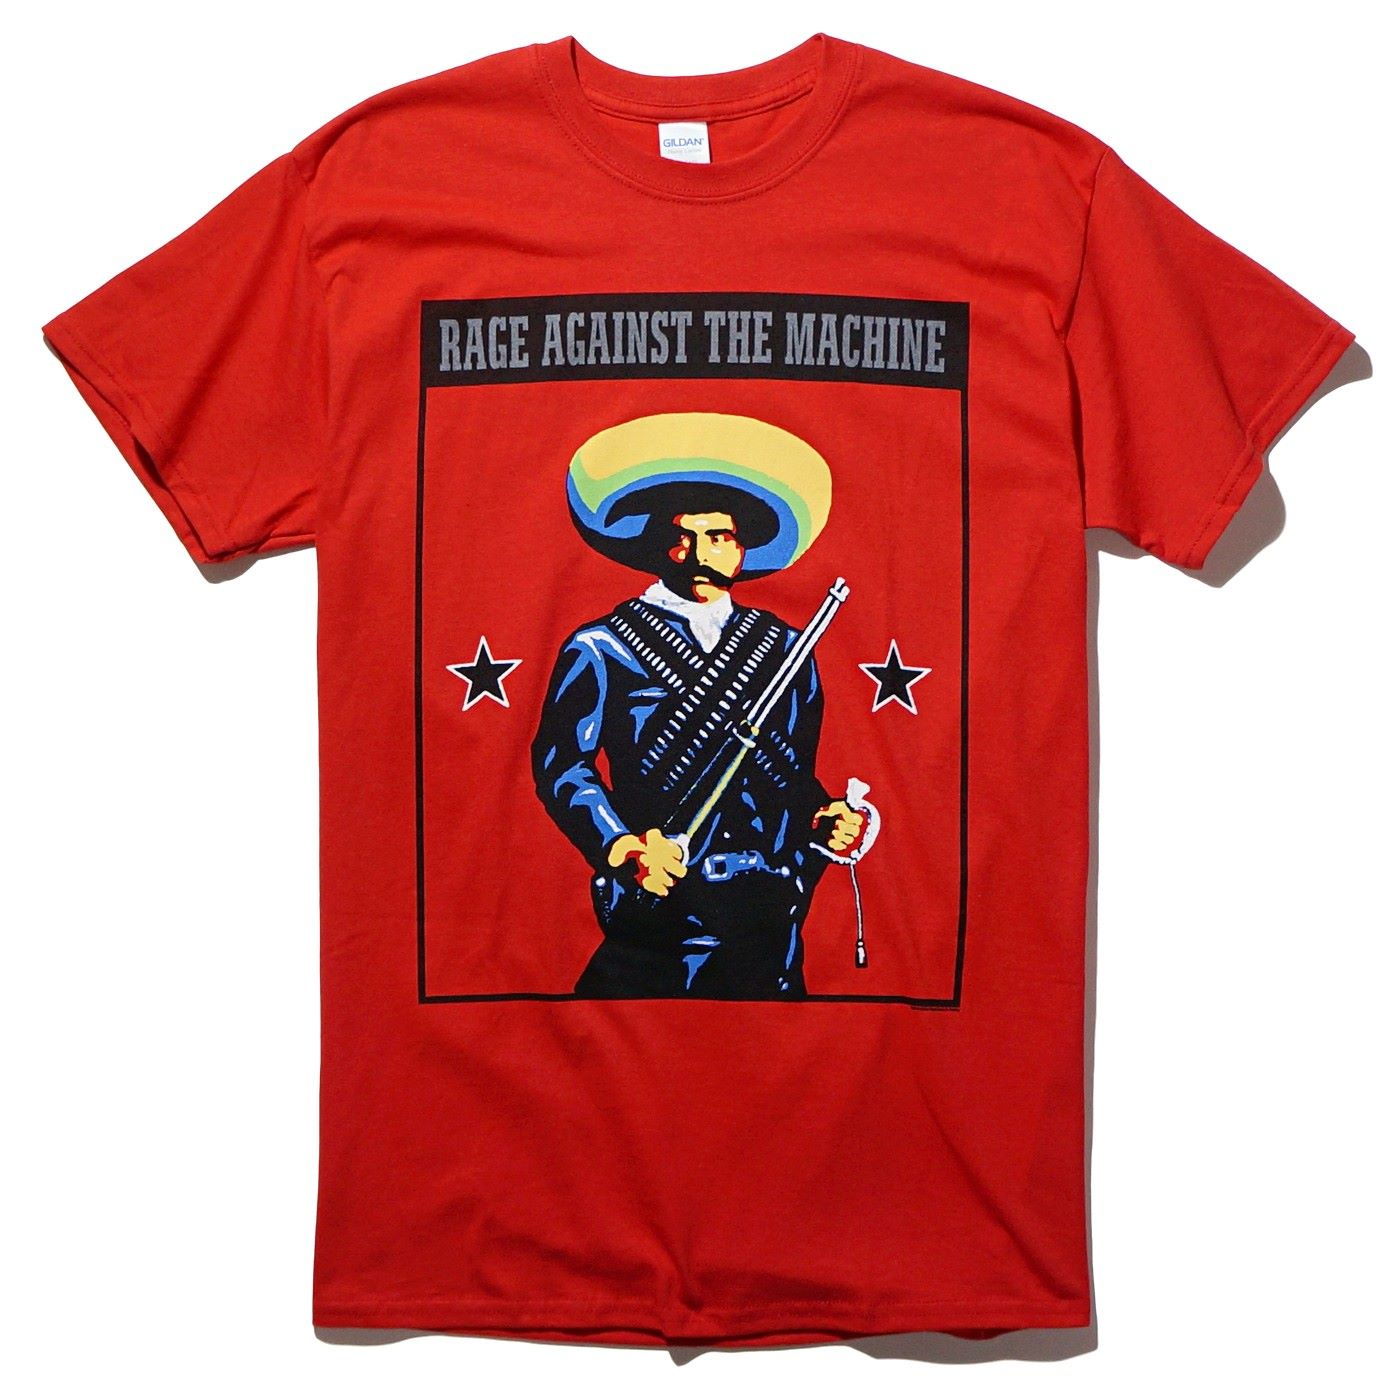 RAGE AGAINST THE MACHINE Tシャツ Zapata -Red